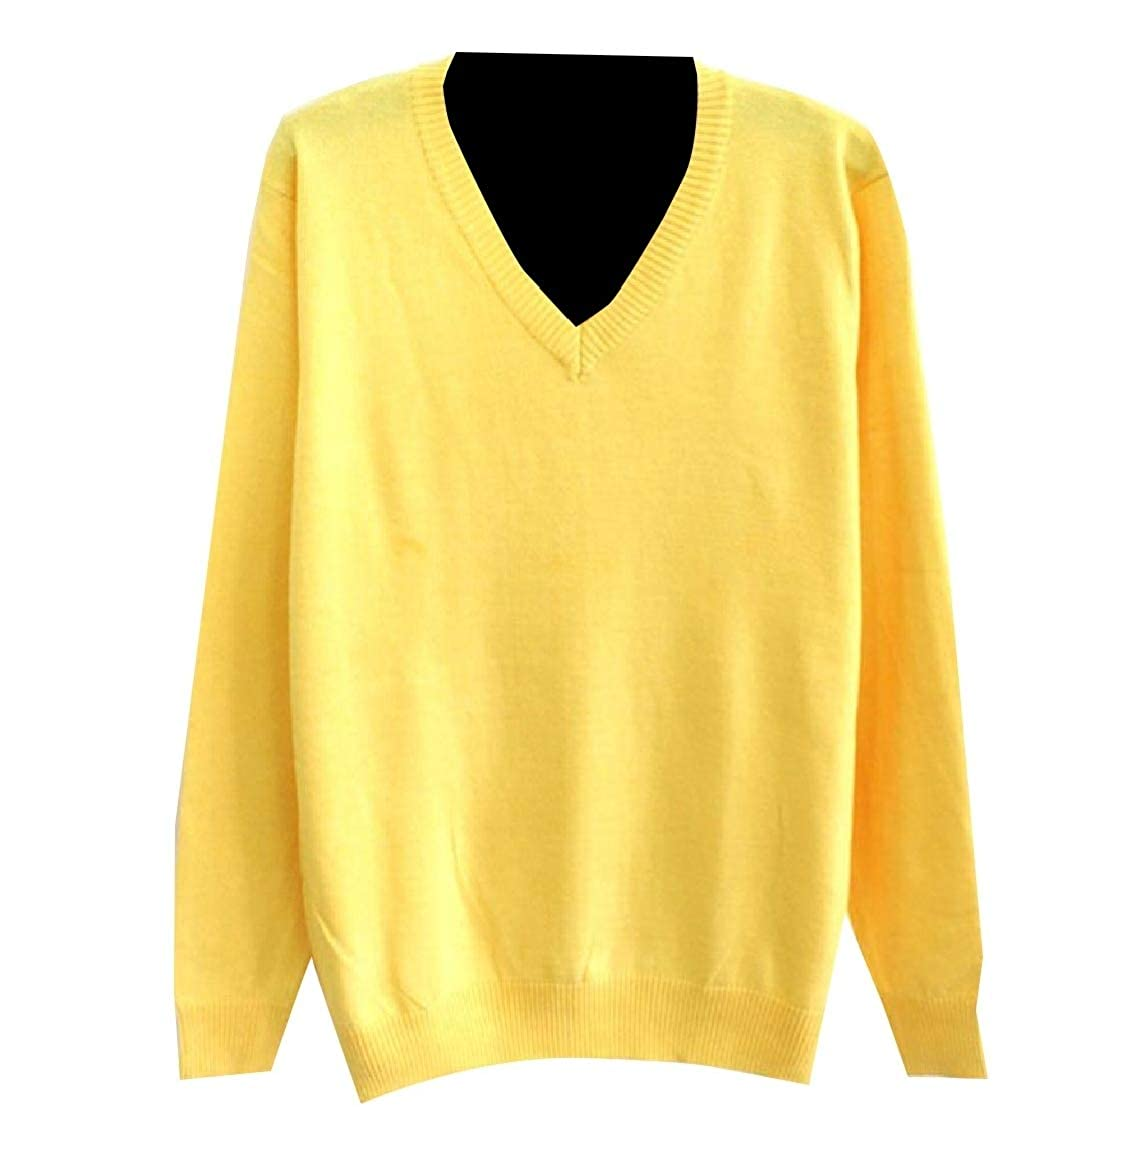 Andopa Mens V Neck Wool Solid Knit Business Relaxed Sweater Pullover